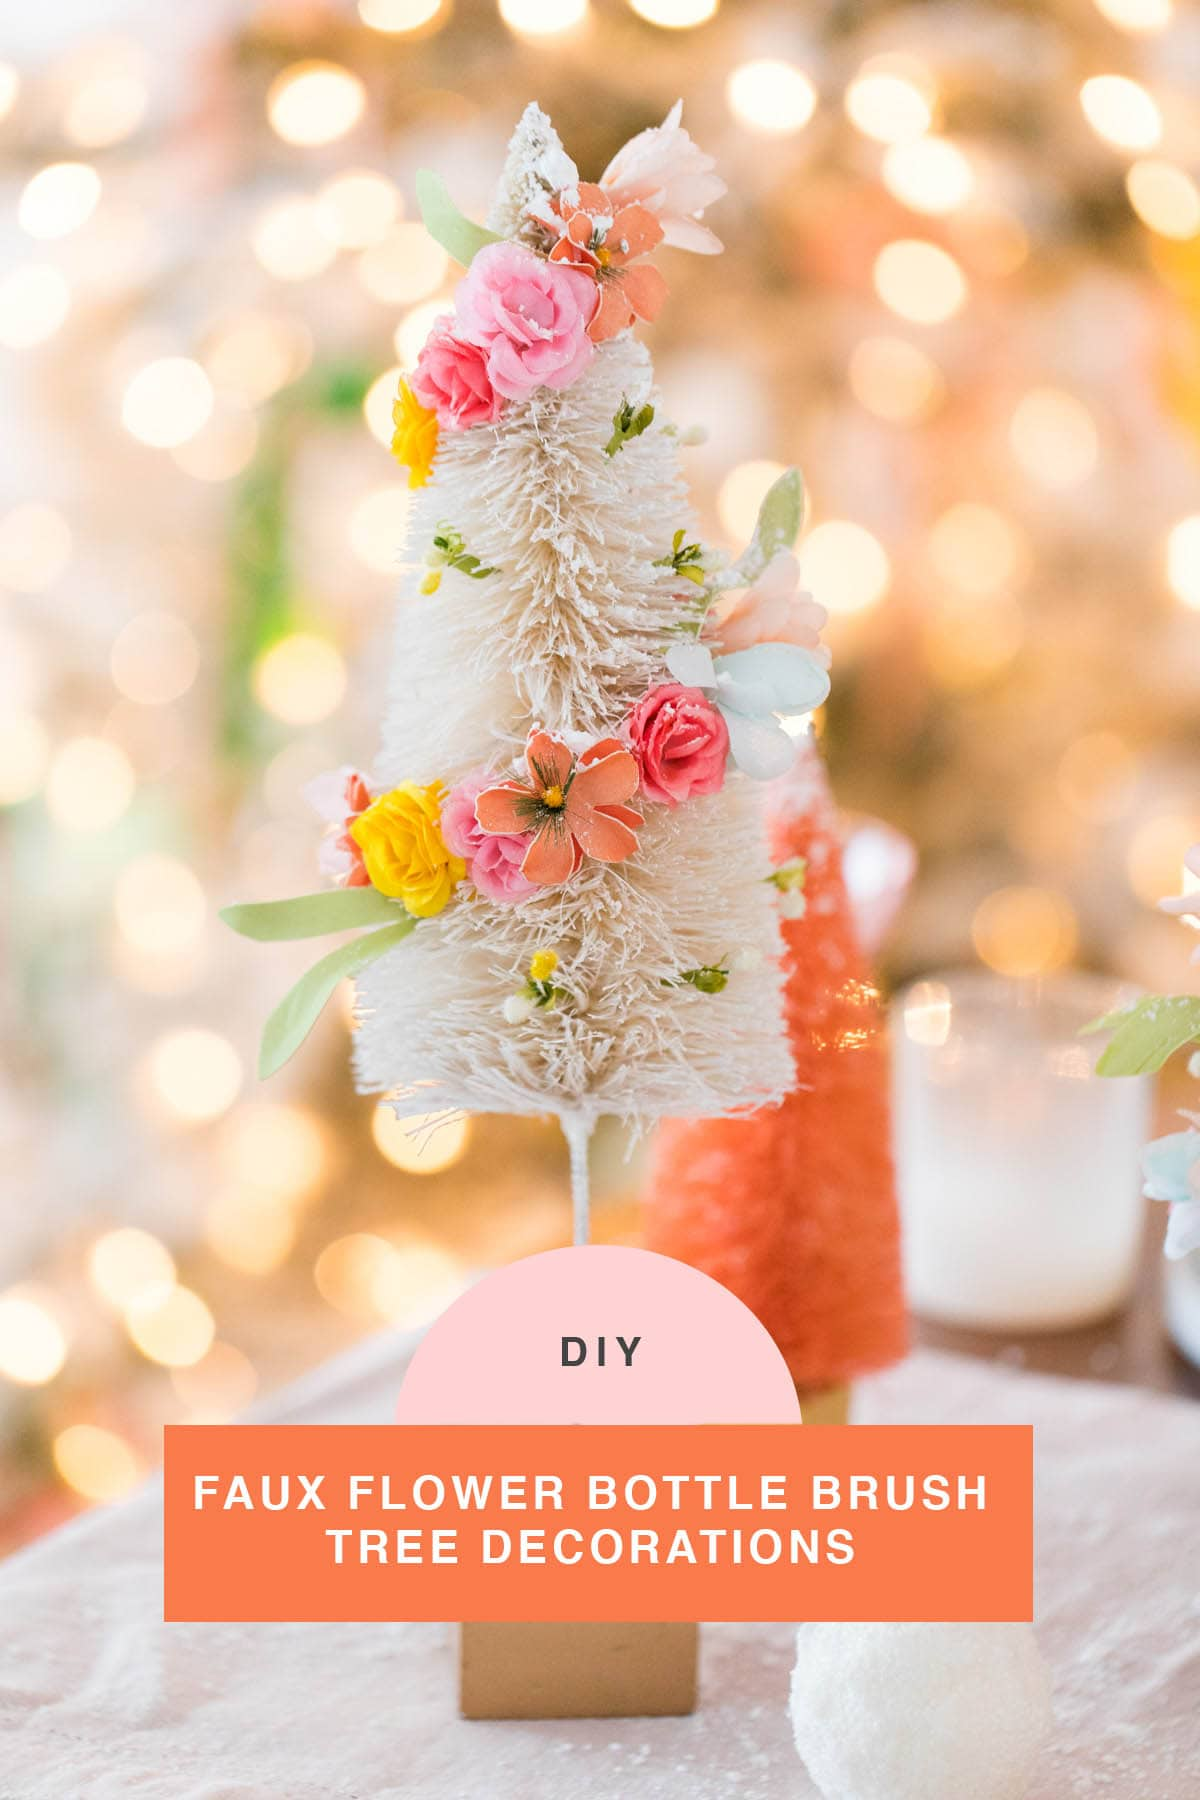 the how to for these Faux Flower Bottle Brush Tree DIY Christmas Centerpiece Idea by top Houston lifestyle blogger Ashley Rose of Sugar and Cloth #diy #christmas #decor #howto #craft #entertaining #centerpiece #ideas